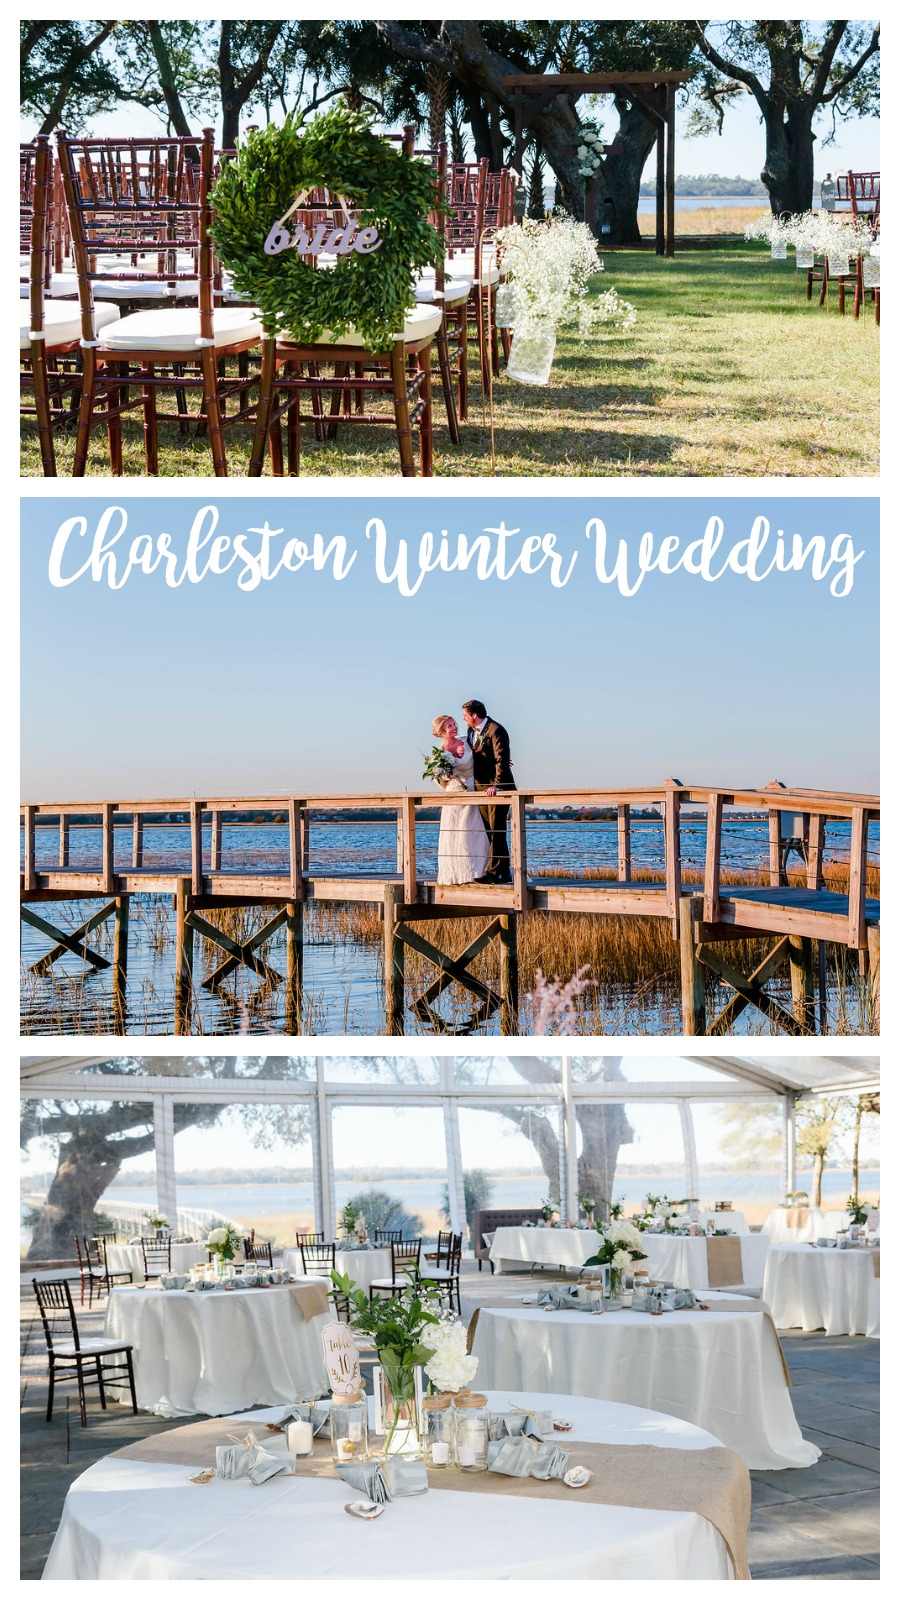 Kylie and Mark: New Year's Eve Weekend Wedding at Lowndes Grove Plantation | Palmetto State Weddings | Leigh Hayward Photography | Charleston plantation wedding | Charleston waterfront wedding | winter wedding